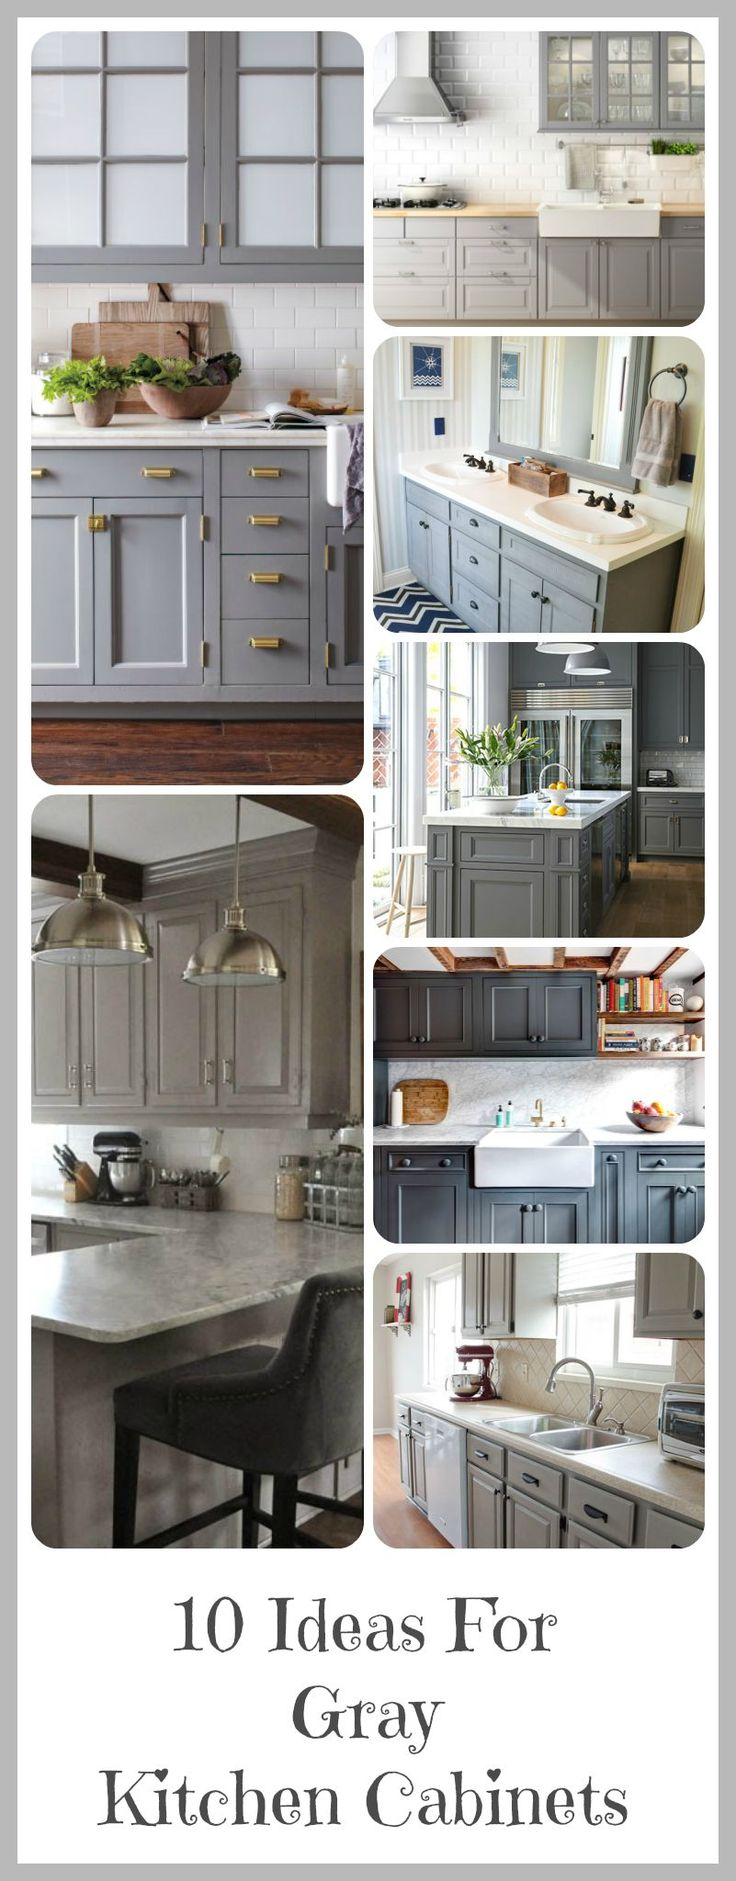 Gettysburg gray kitchen cabinets - I Ve Been Obsessed With Gray Cabinets Lately And Can T Wait To Paint Mine Gray Here Are Some Of My Top Favorite Inspirations For Gray Cabinet Colors And